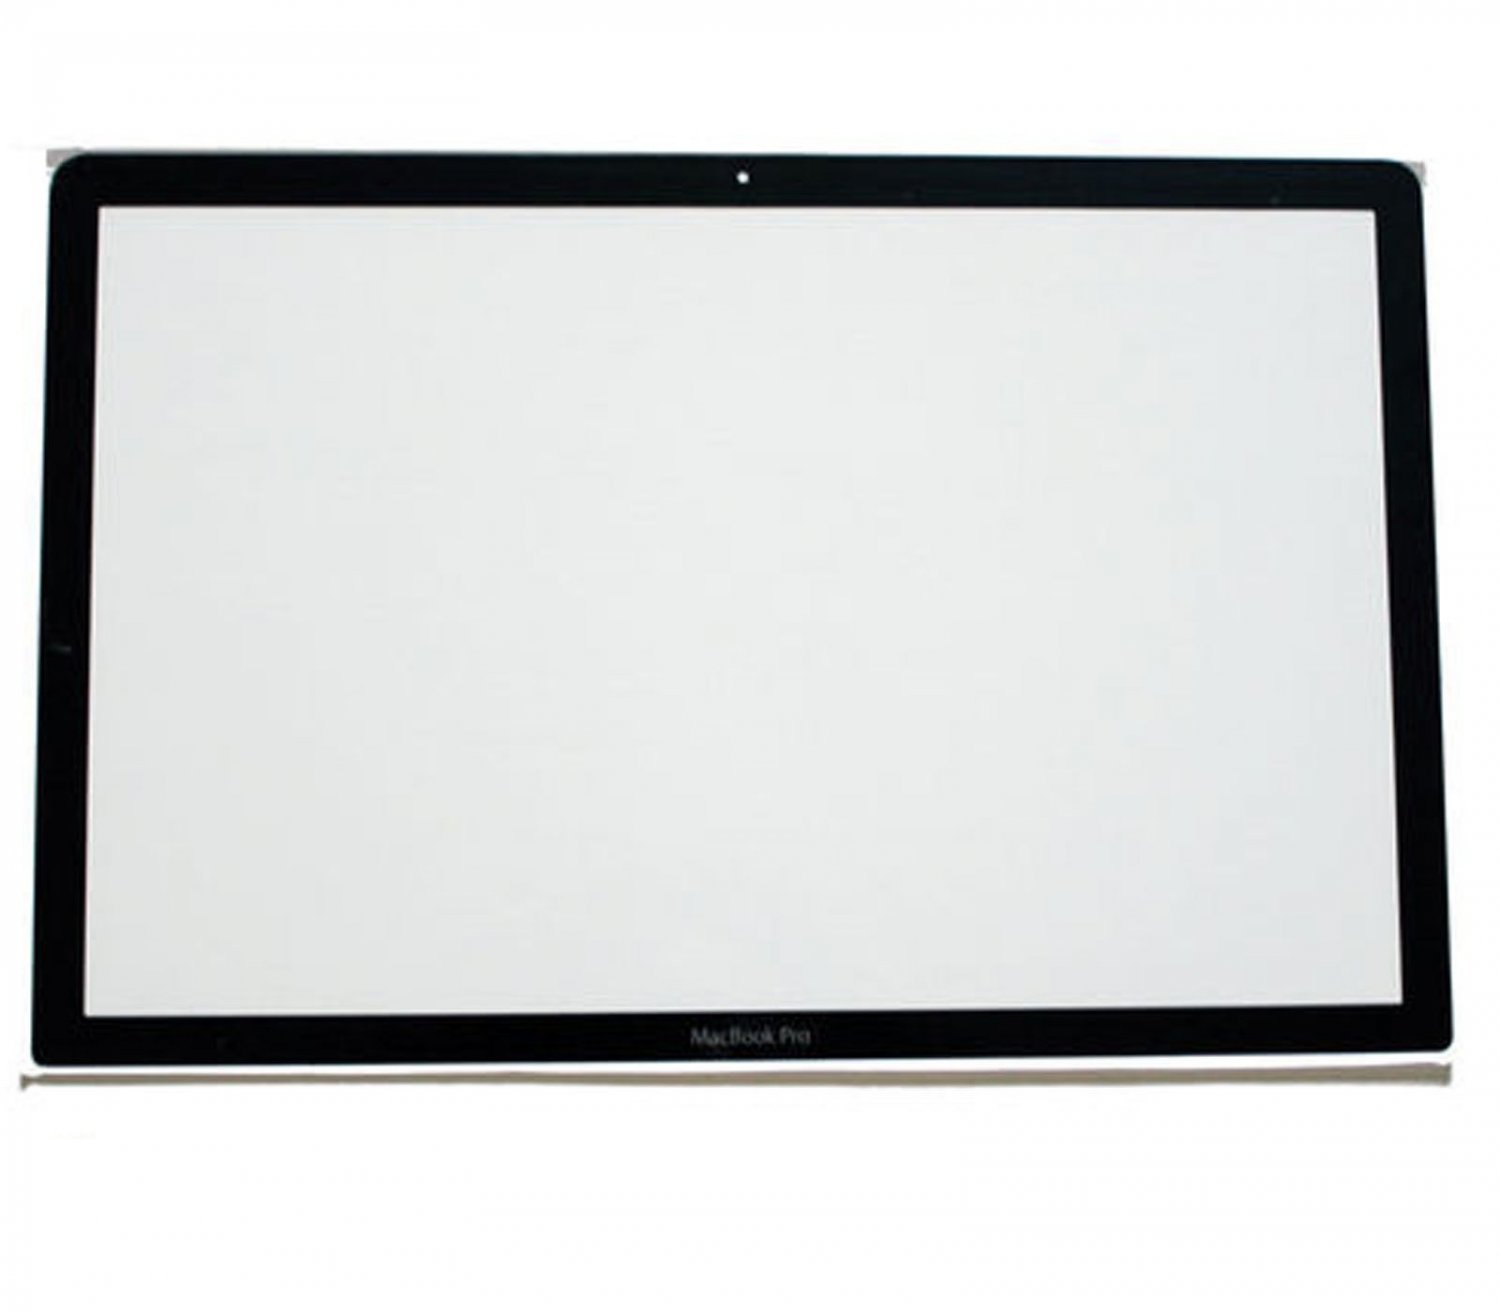 New Apple Macbook Pro 17-17.1 Inch Front LCD Glass Bezel Cover for A1297